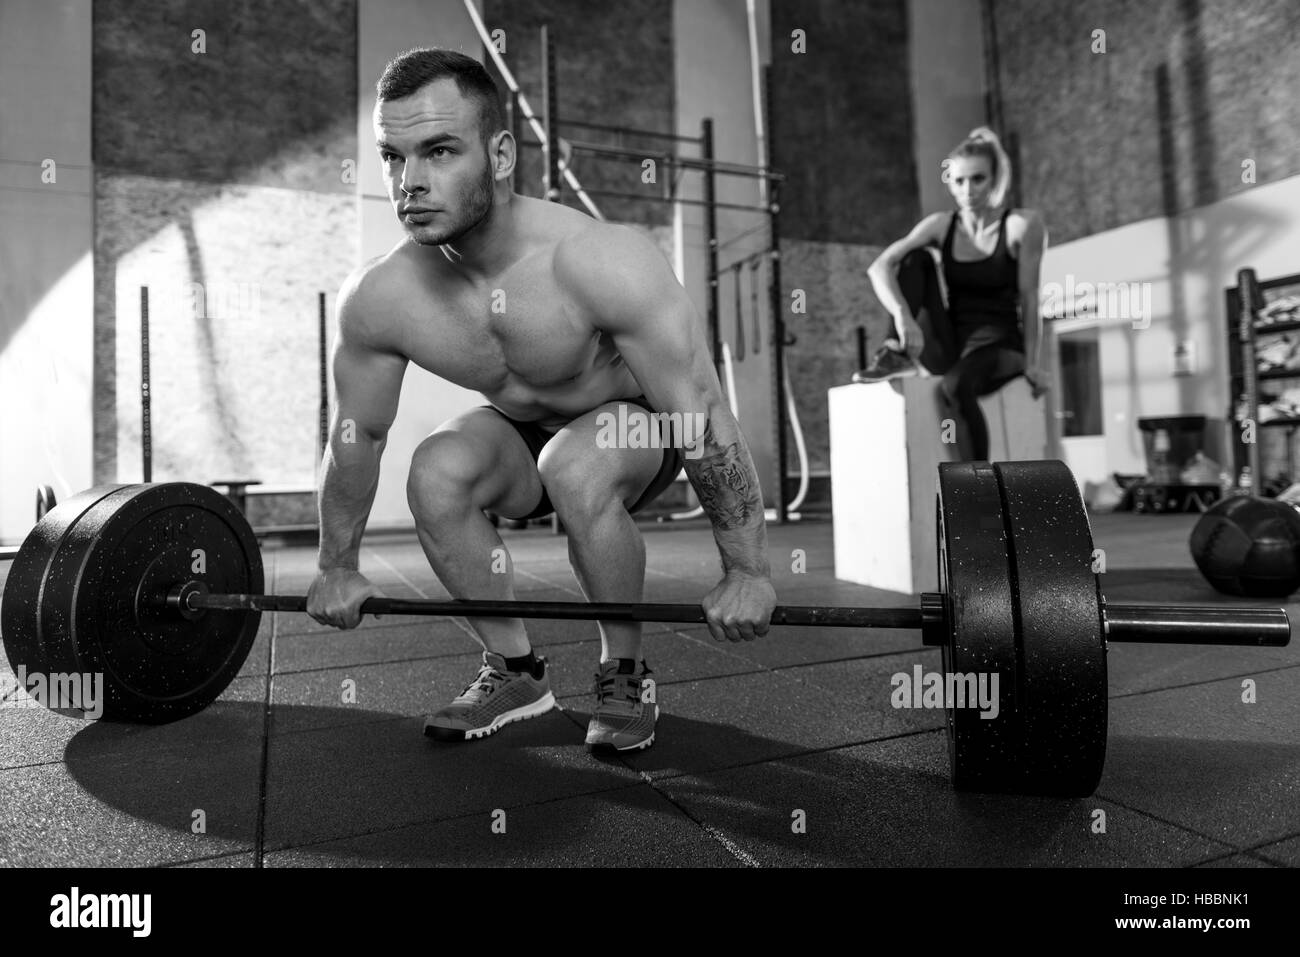 Hard working strong bodybuilder preparing to lift a barbell - Stock Image